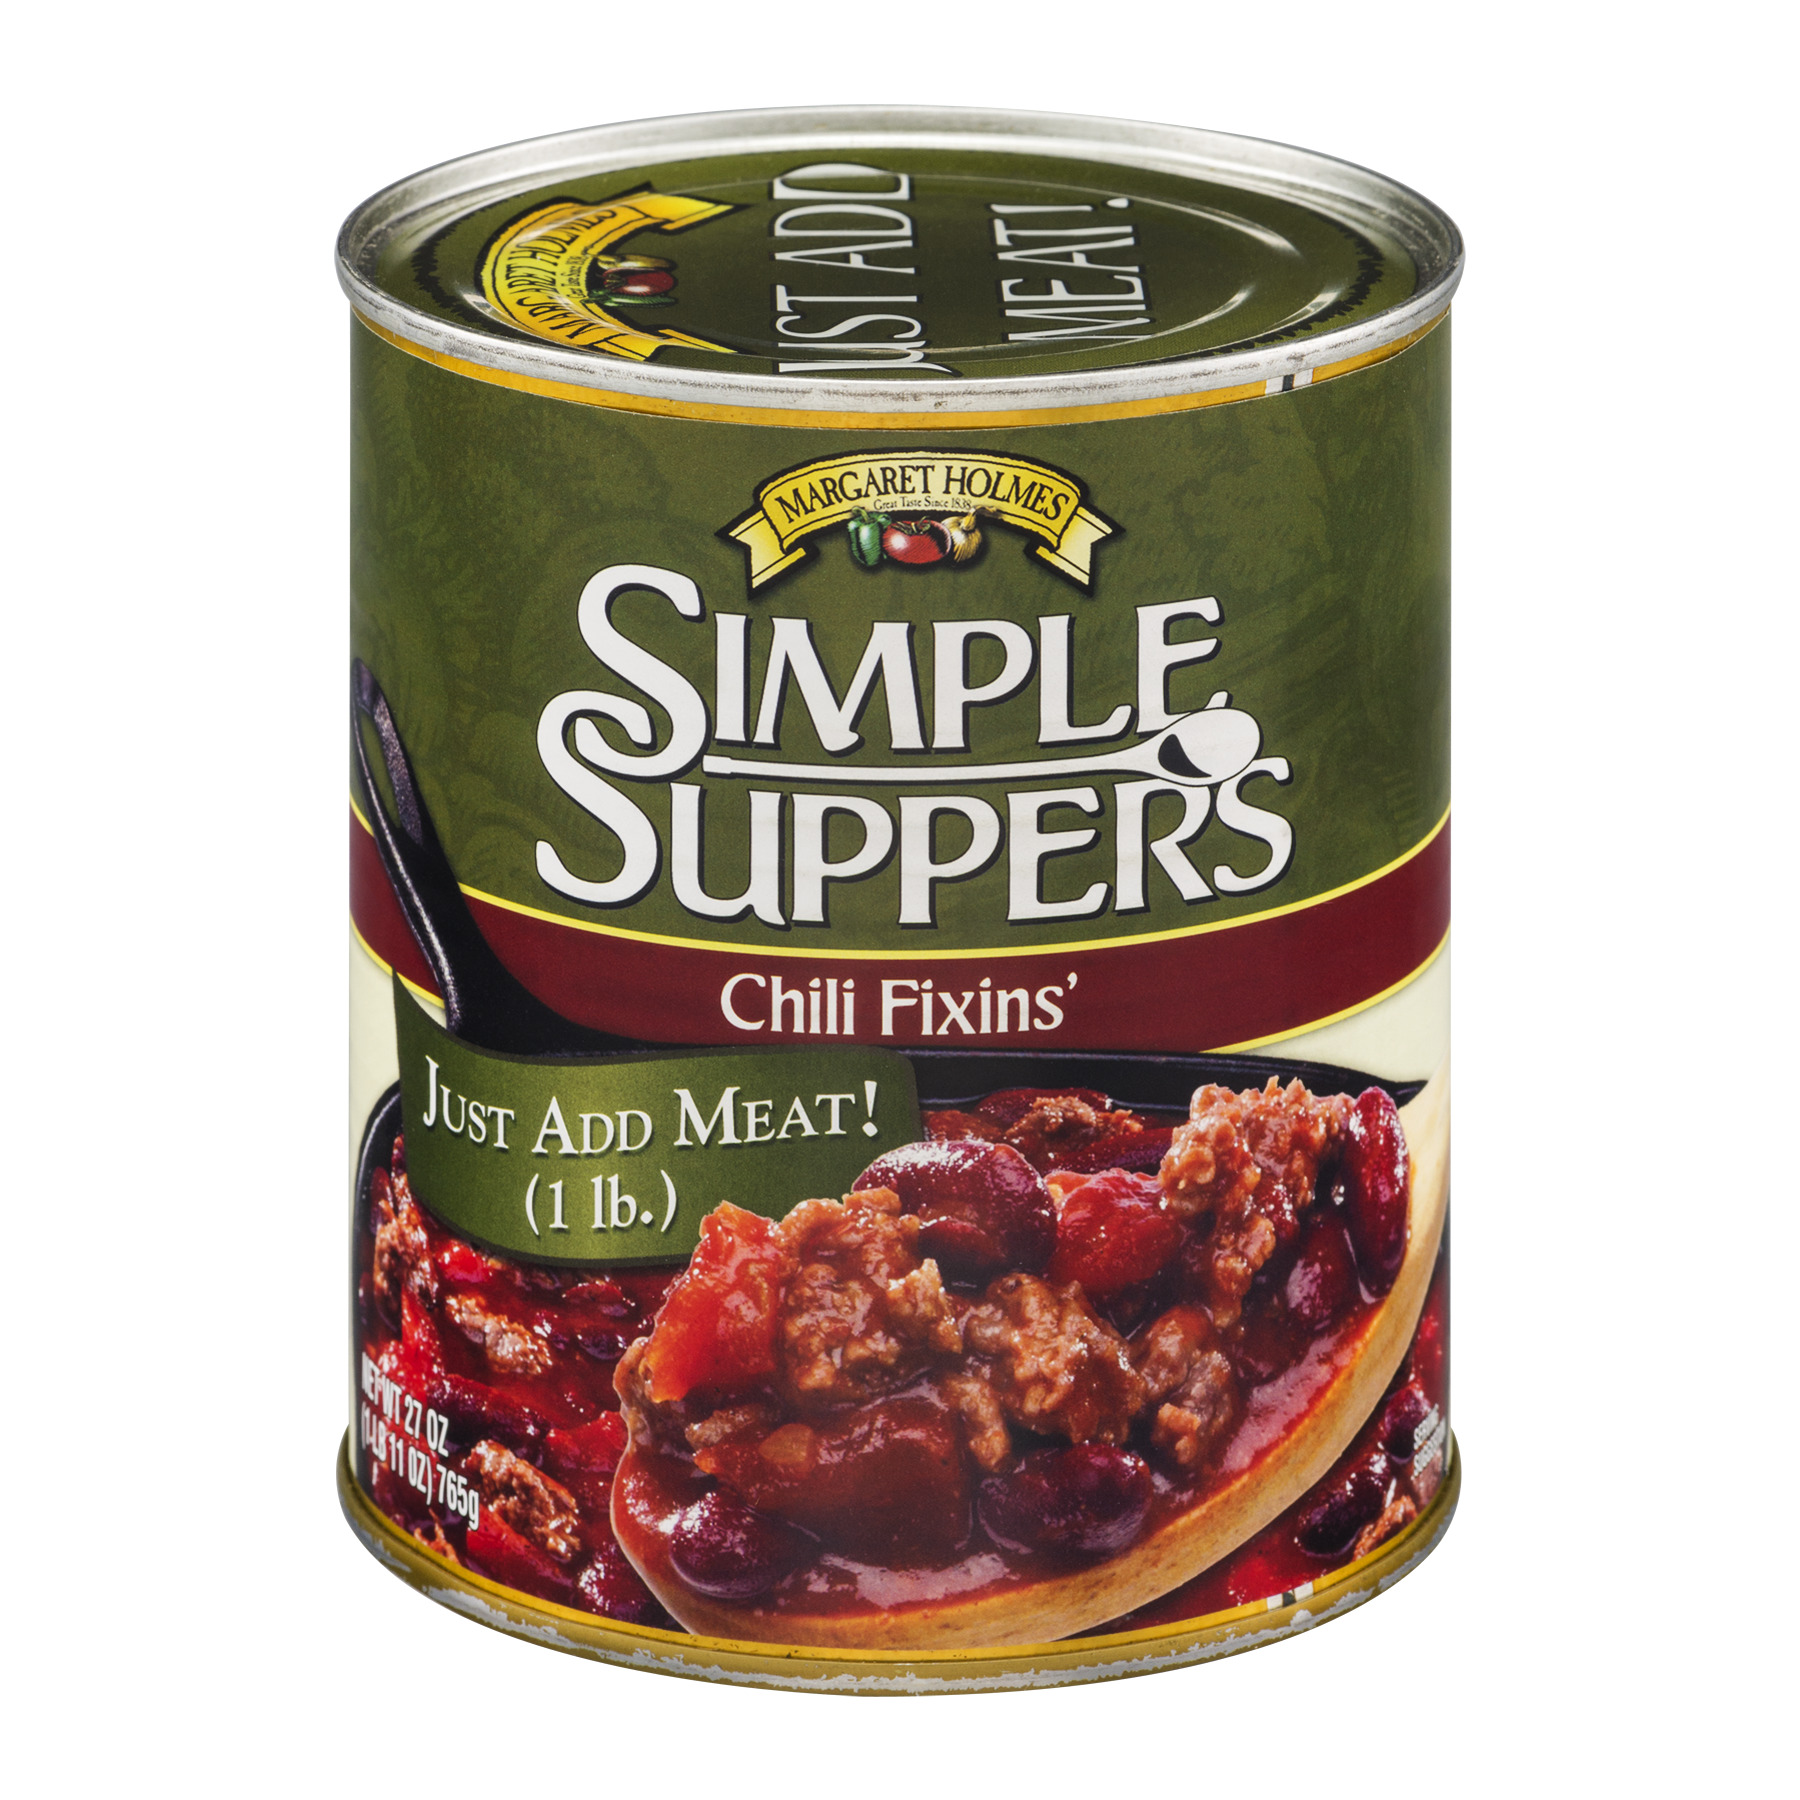 Margaret Holmes Simple Suppers Chili Fixins', 27 Oz